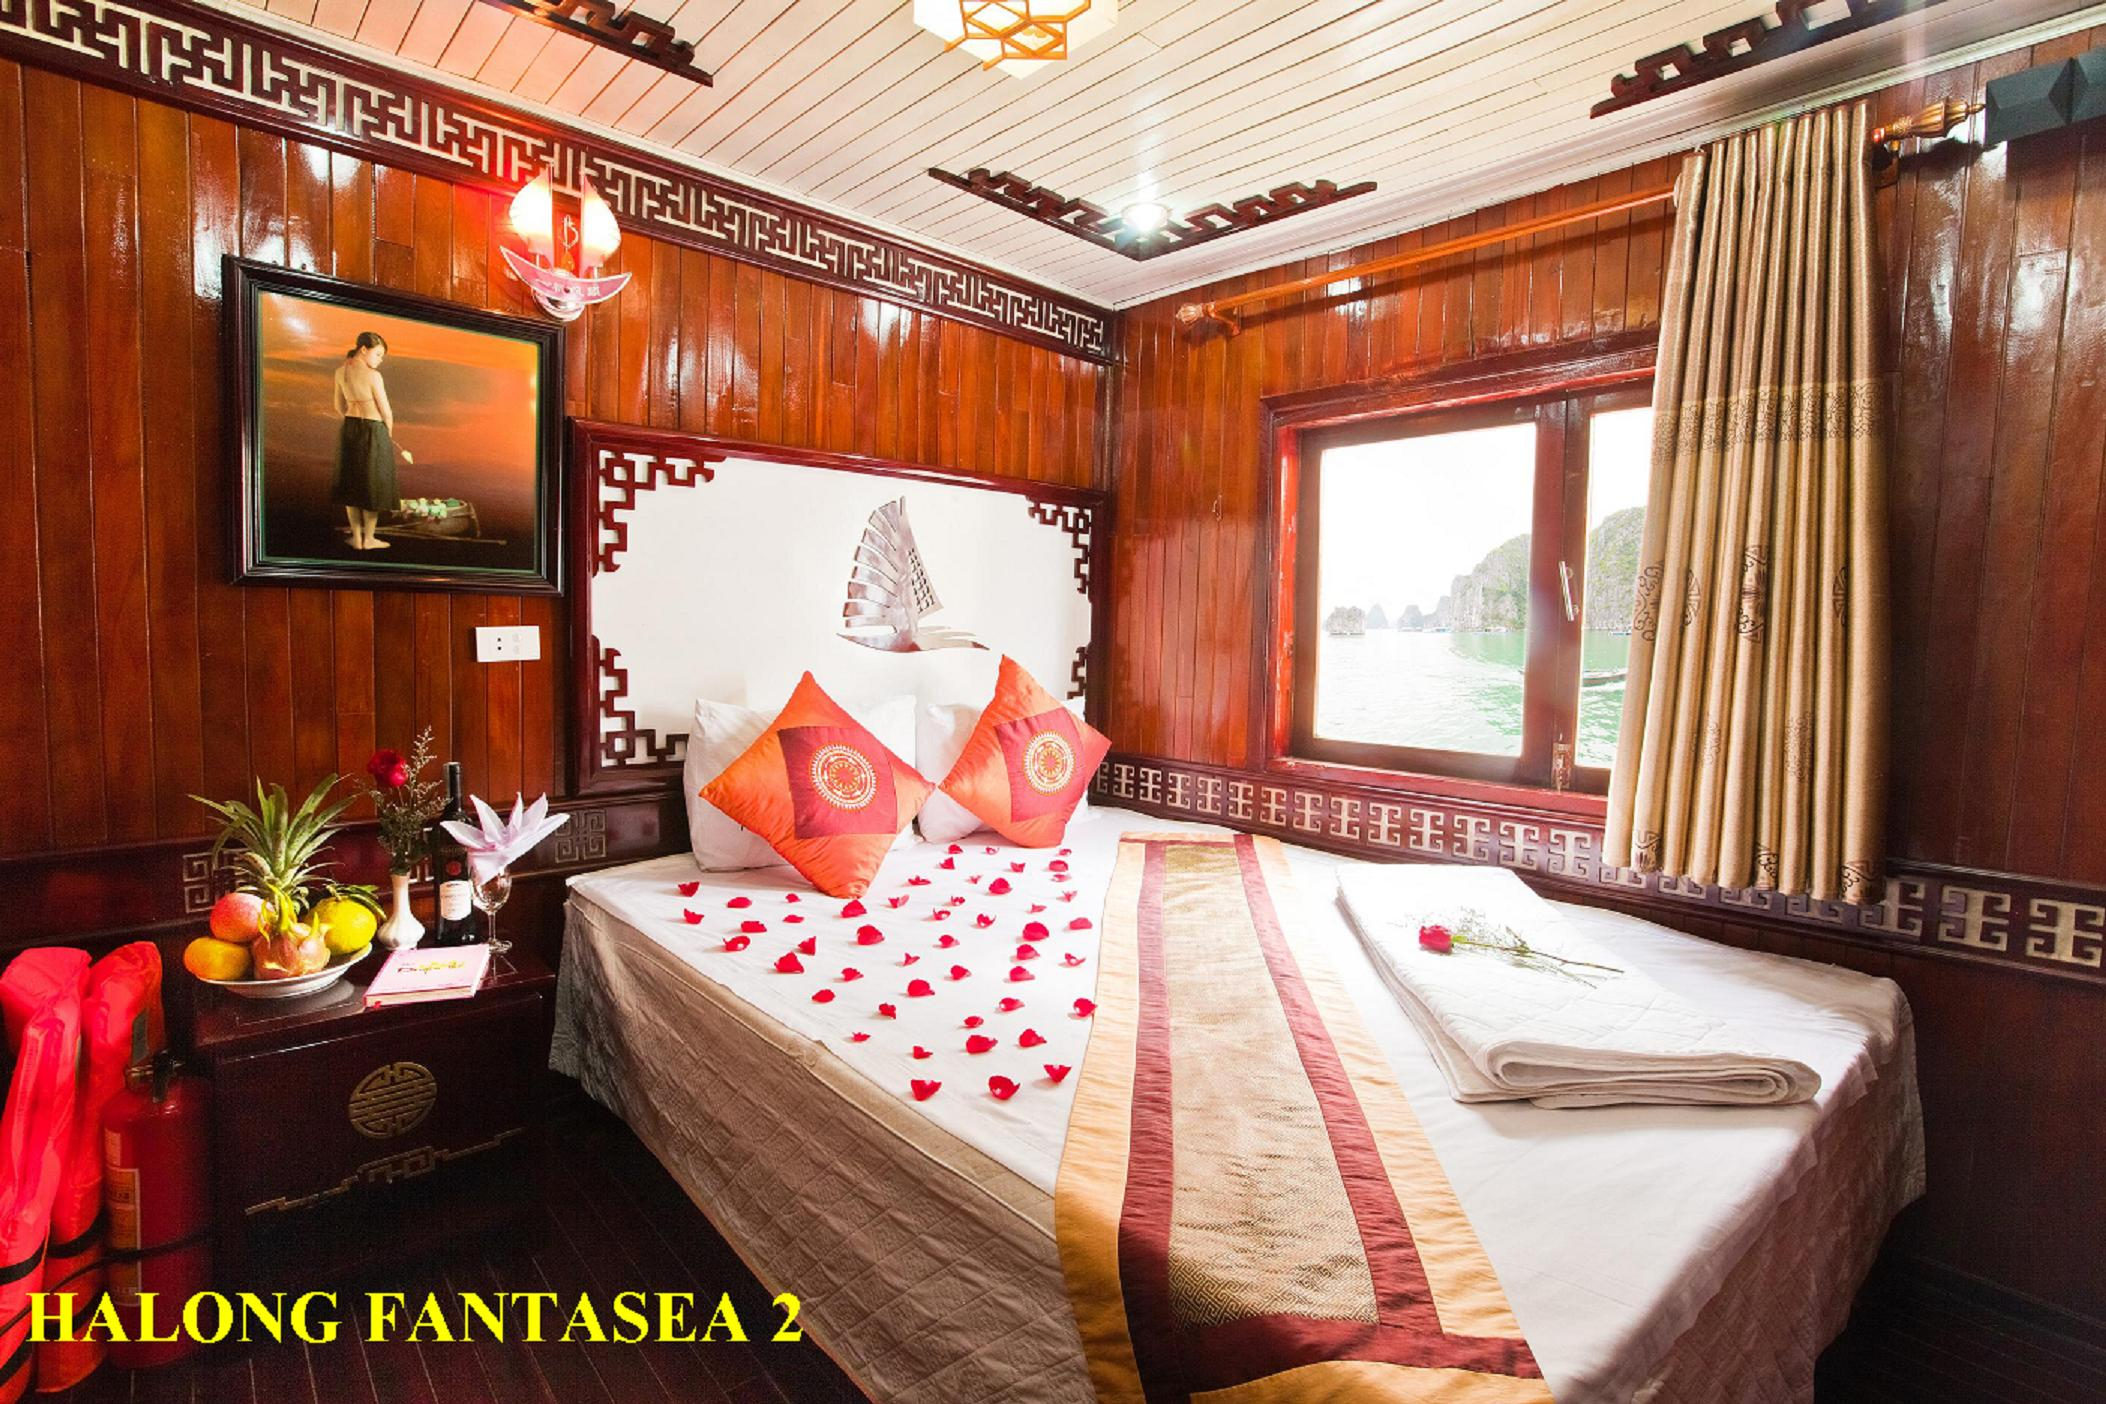 HALONG BAY 2 days/ 1 night - on Fantasea Cruise